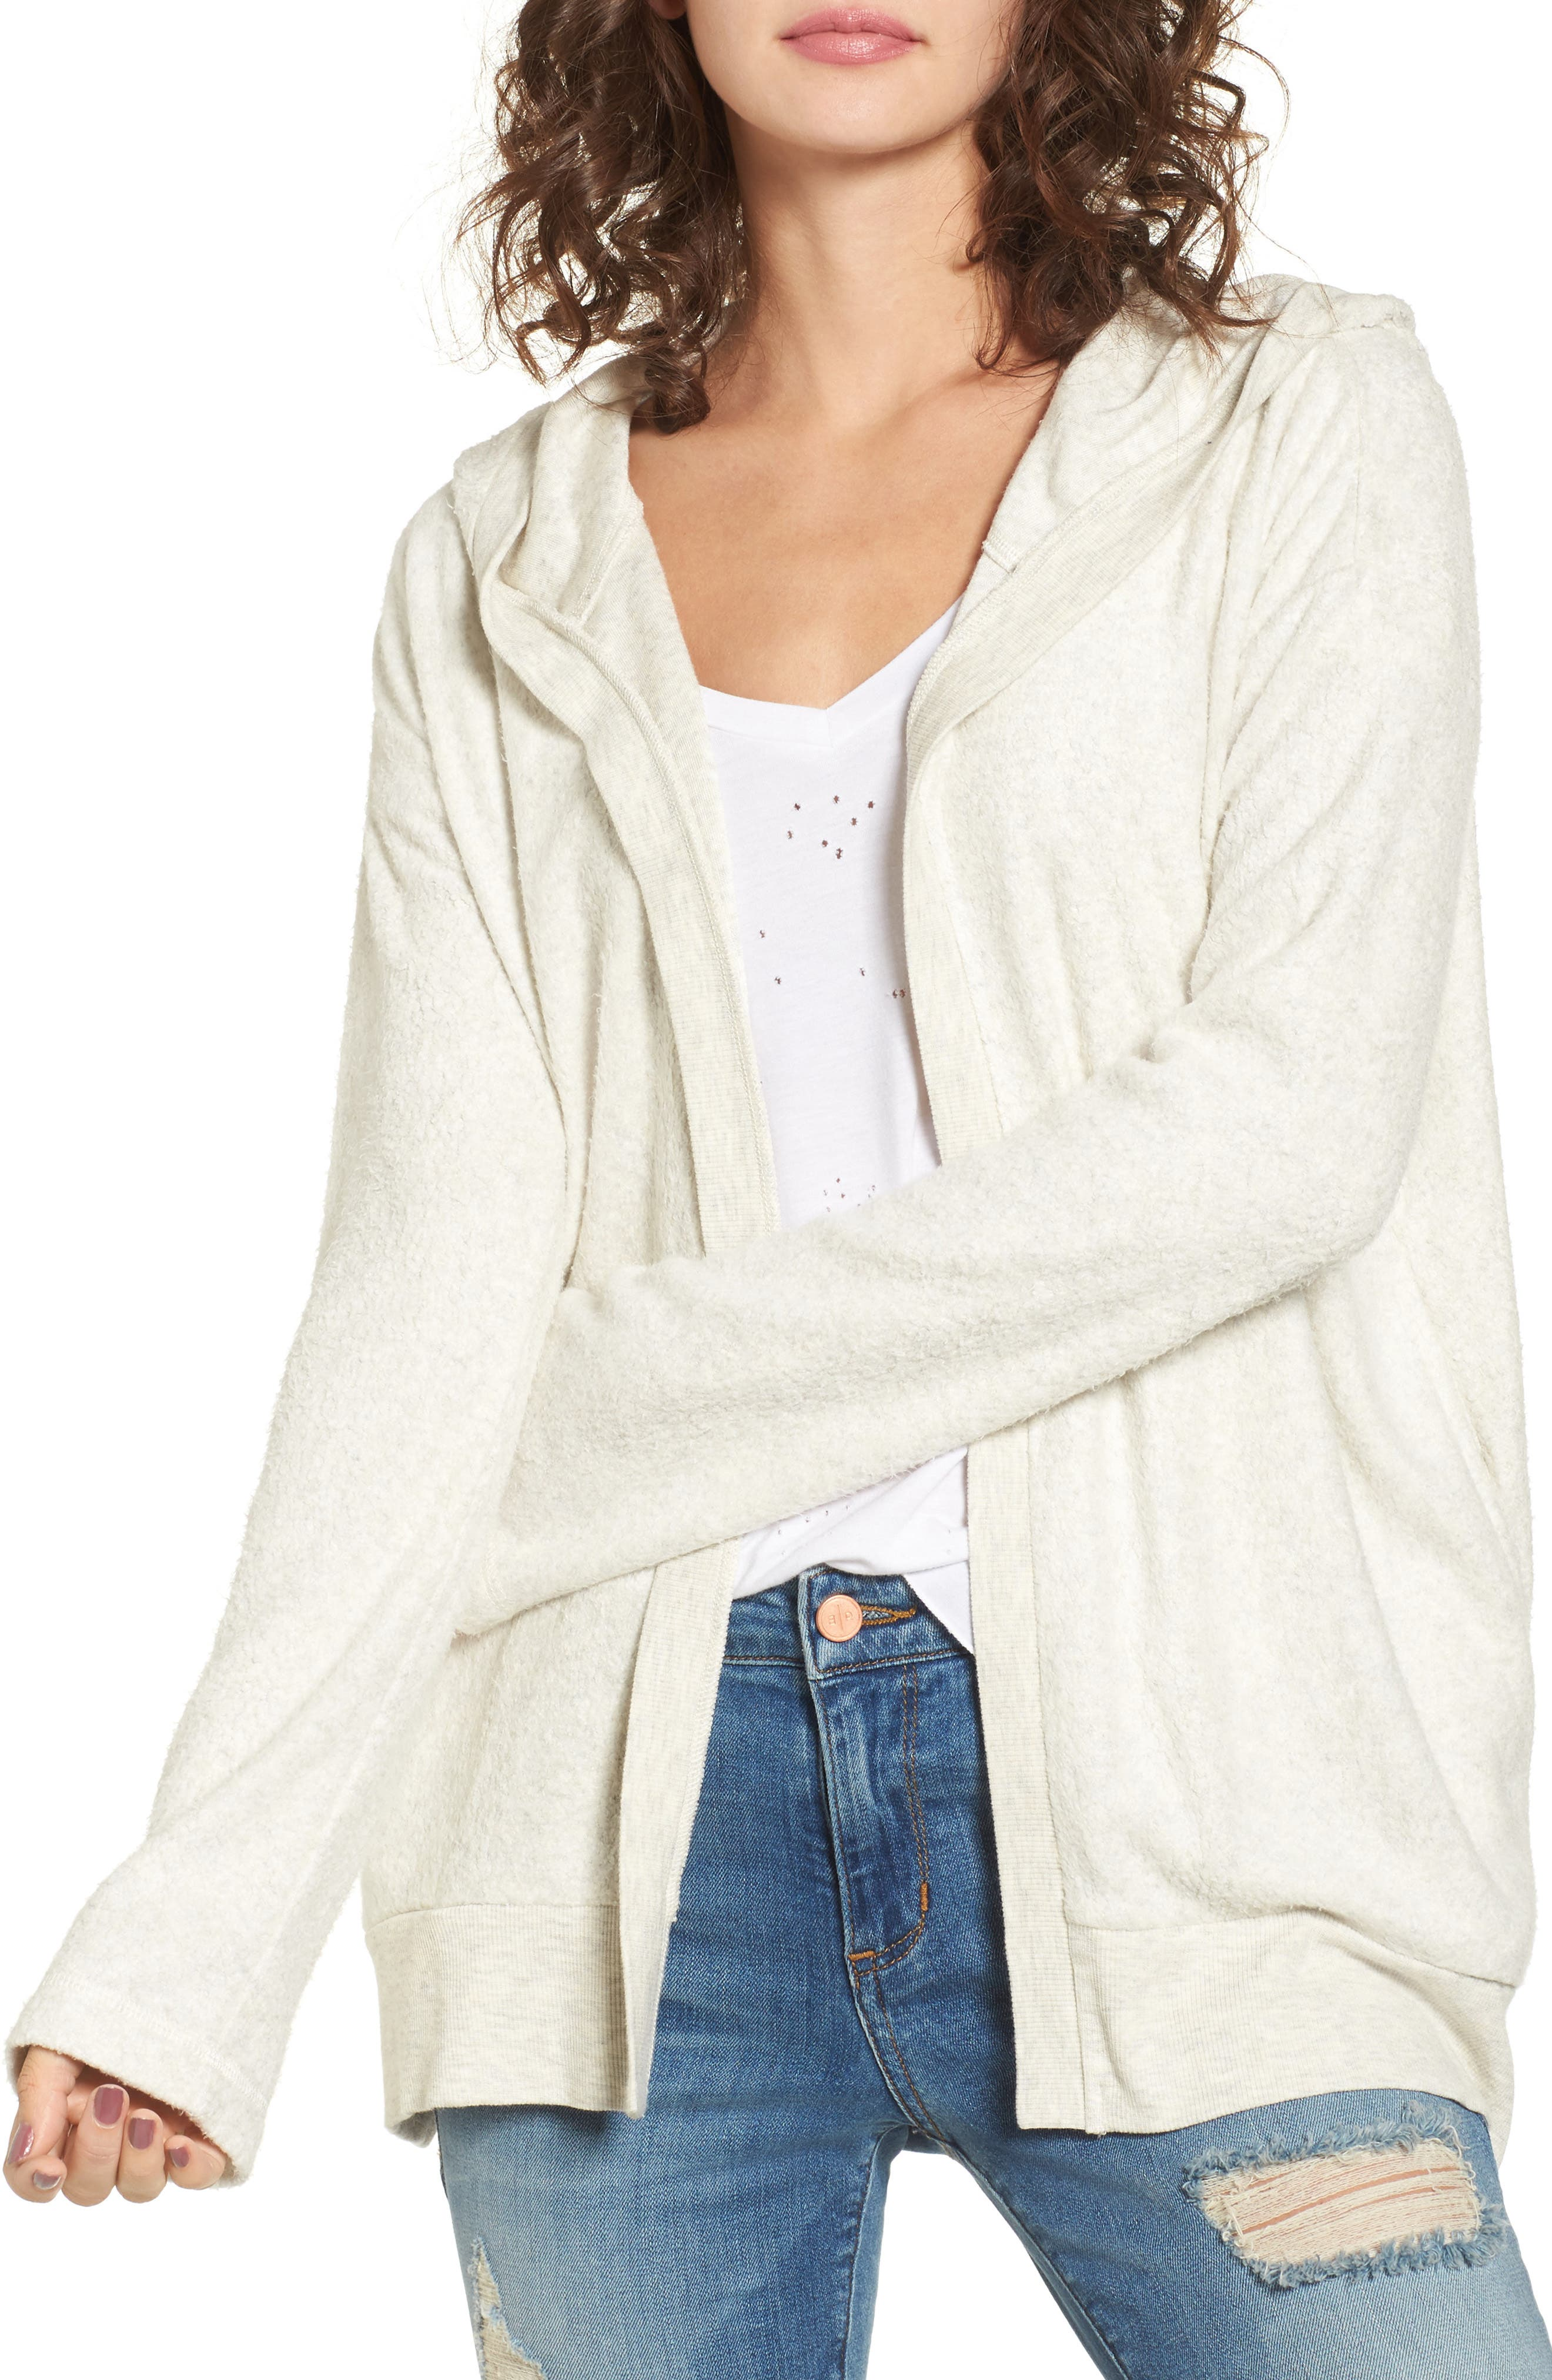 Down in Front Cardigan Hoodie,                         Main,                         color, 020